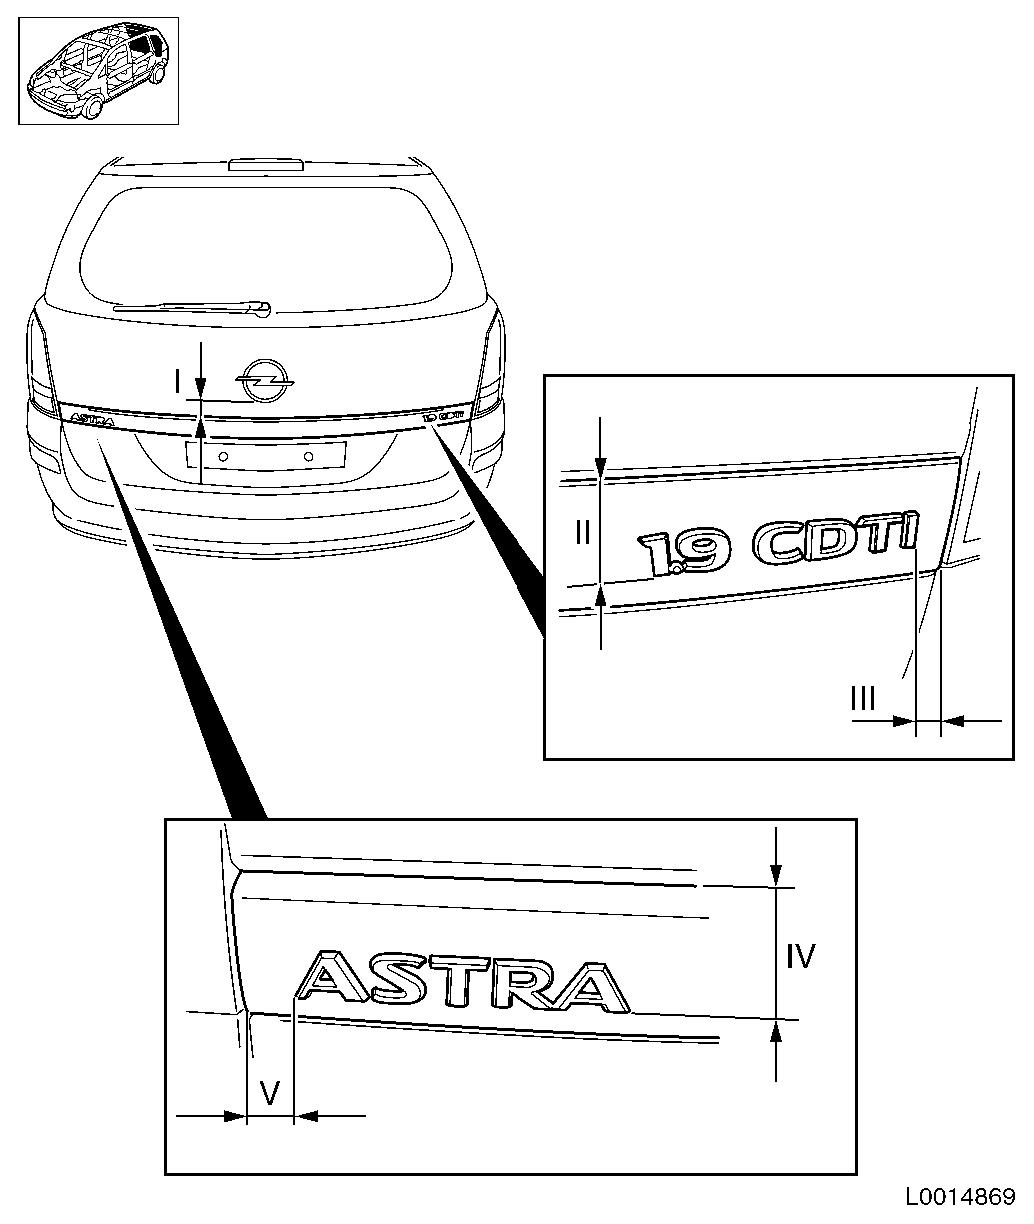 Vauxhall Workshop Manuals > Astra H > C Body Equipment